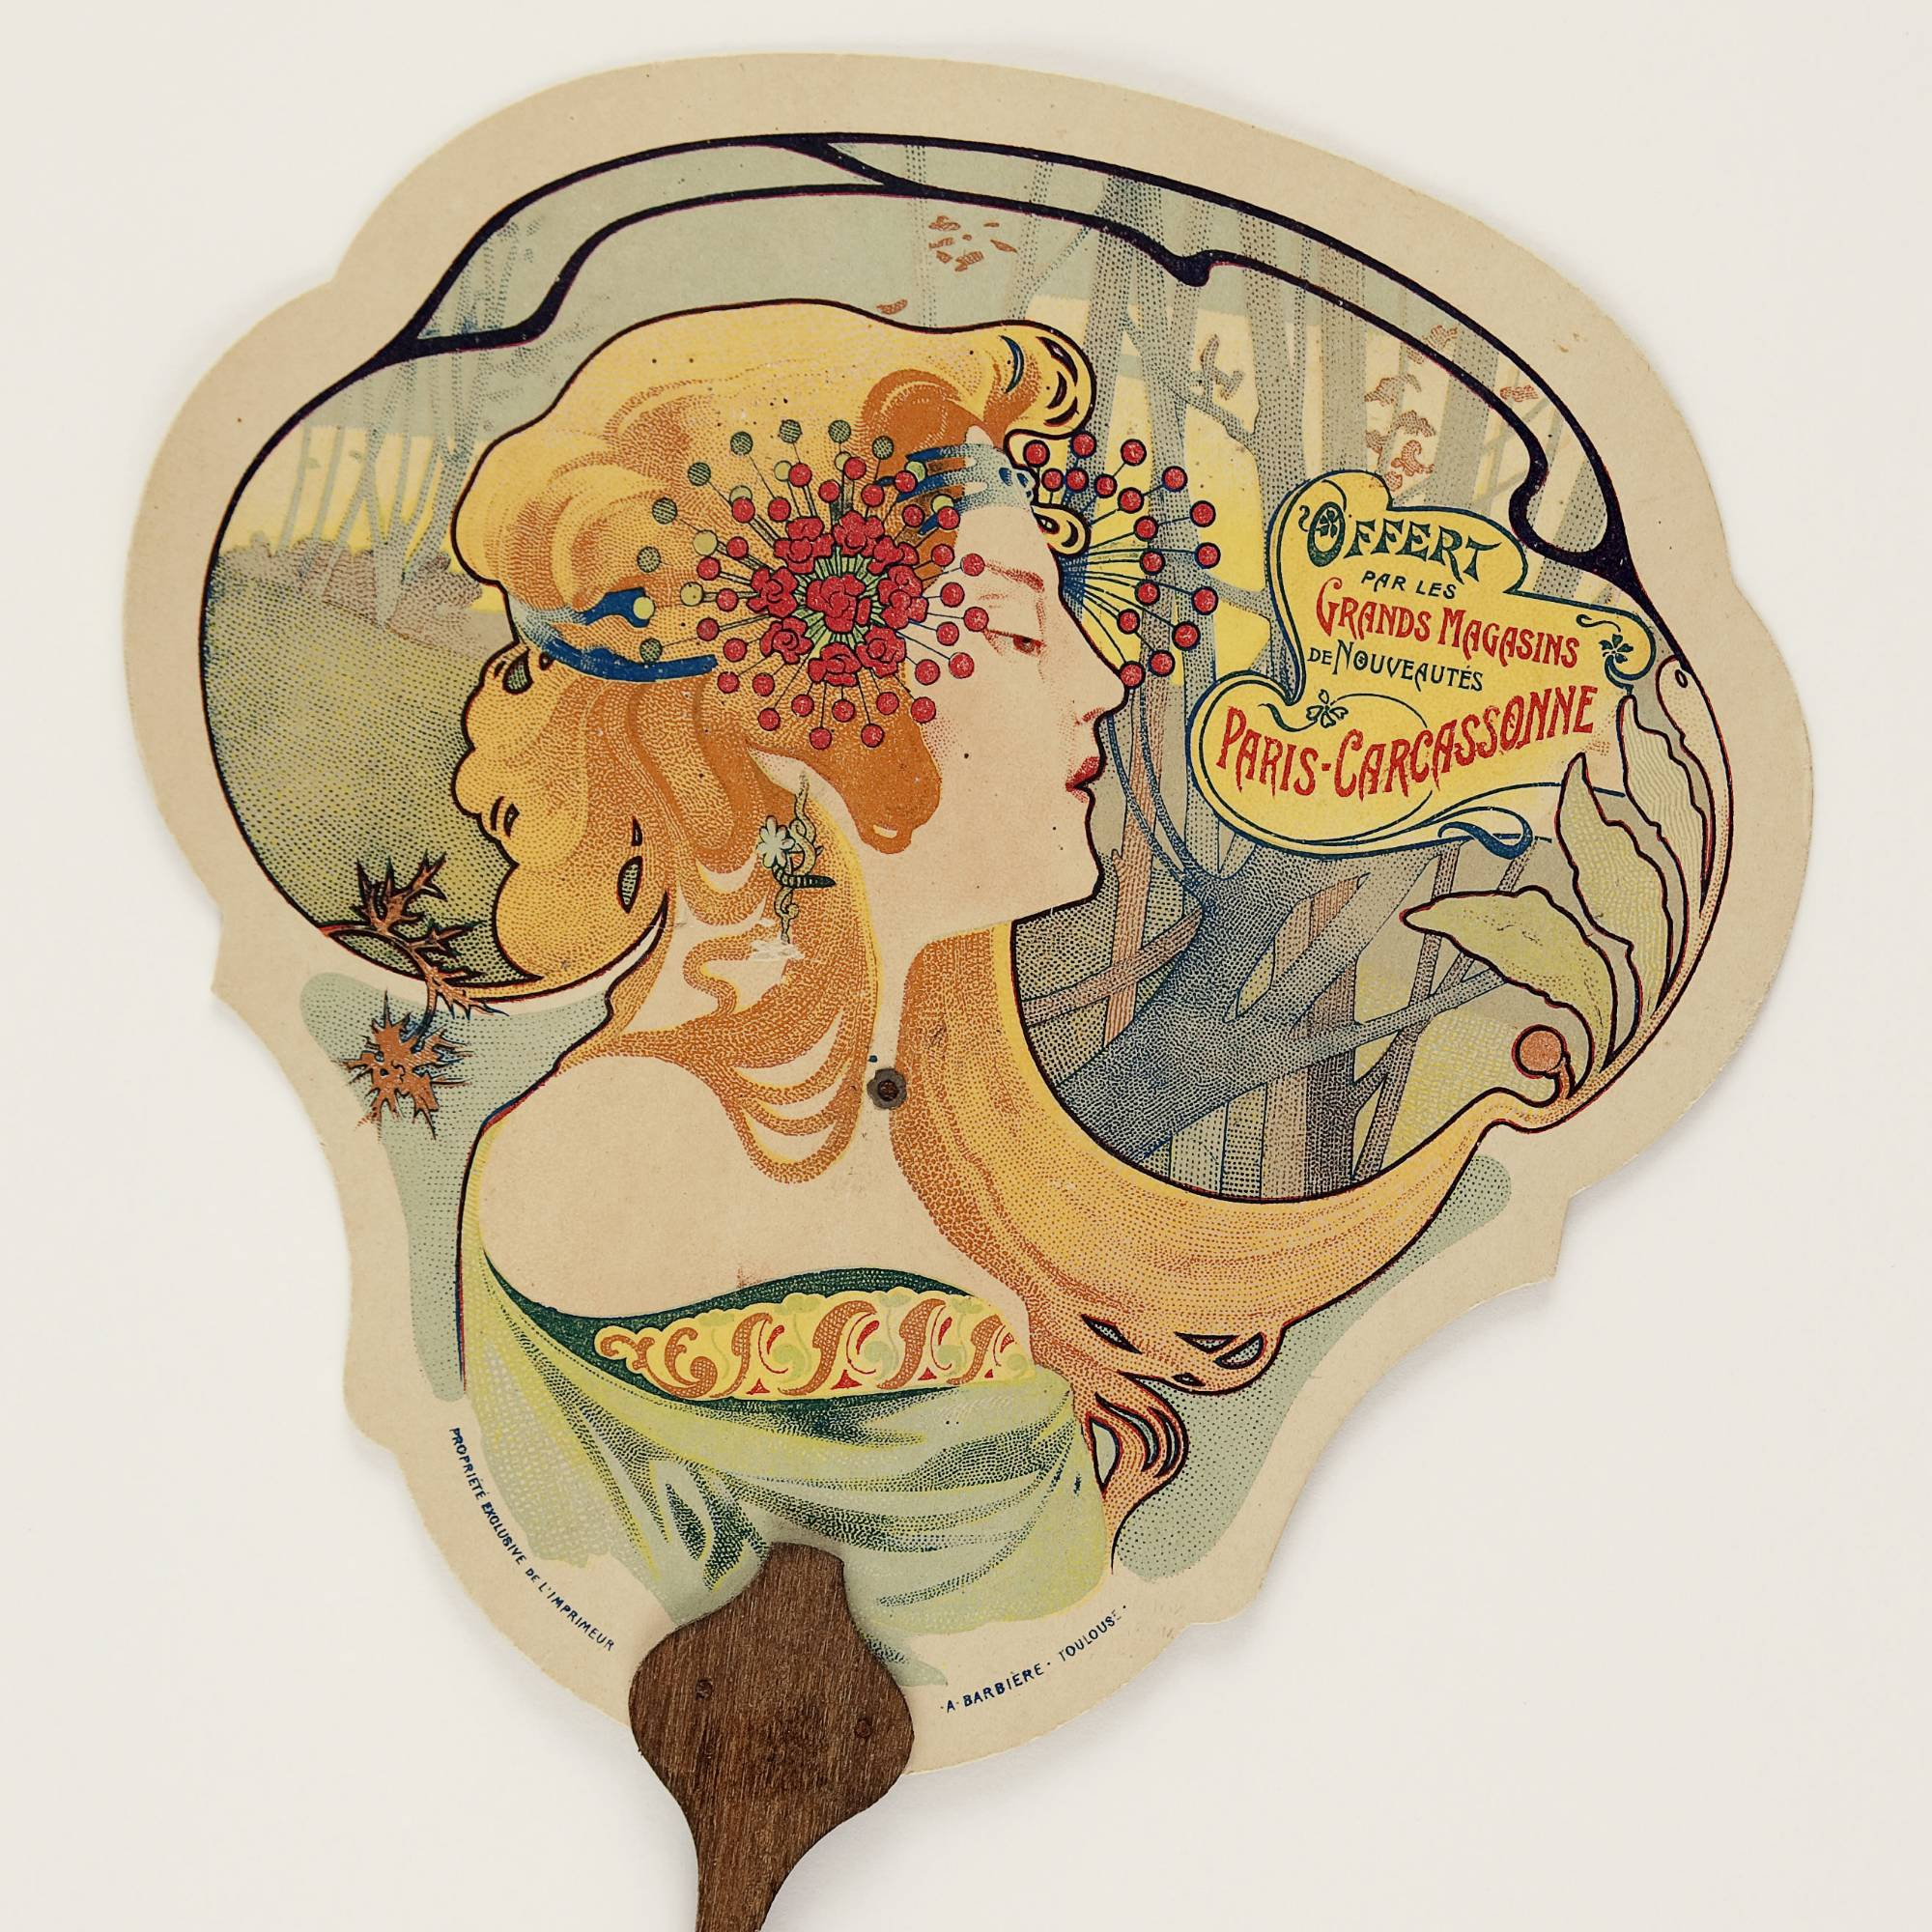 "fan with lithographic print of woman with flowers in her long, orange hair next to text that reads ""Grands Magasins de Nouveautes"""